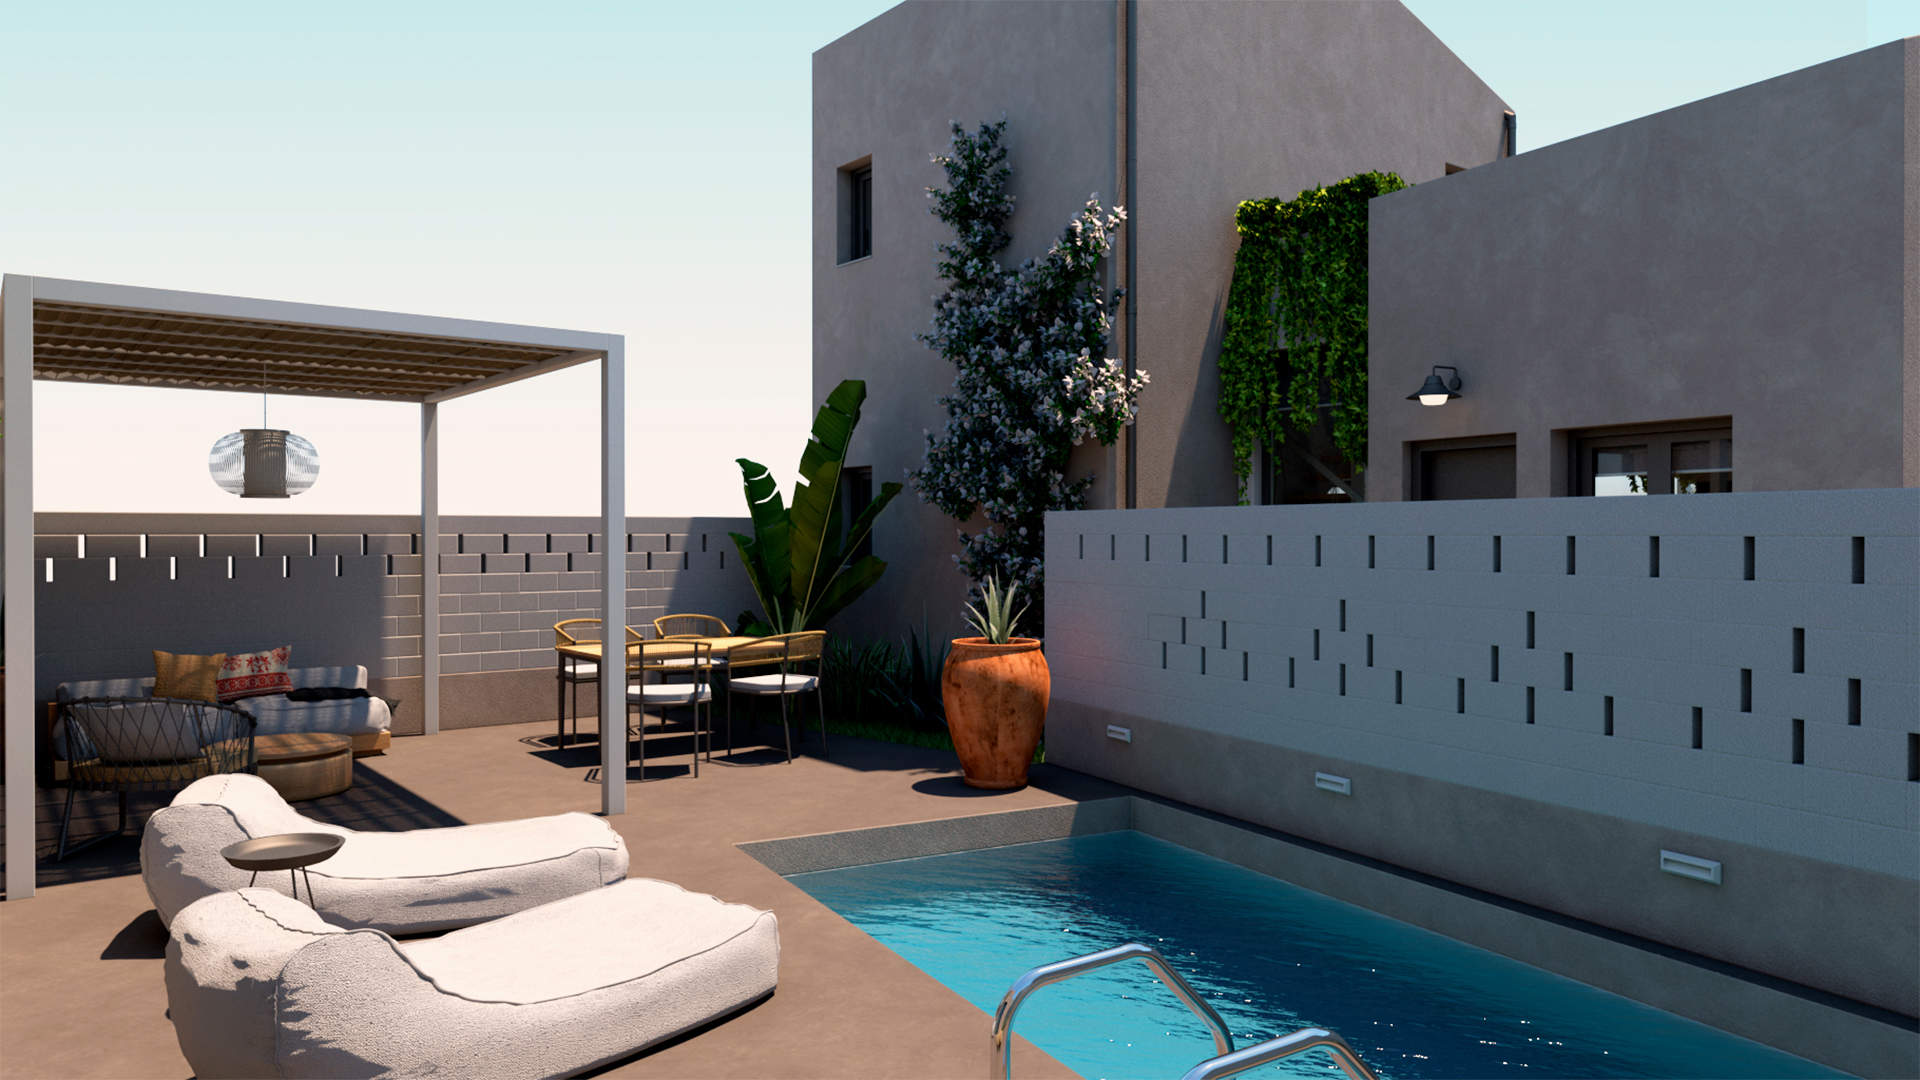 villas complex, exterior design,private outdoor space and pool, landscaping. Συγκρότημα τουριστικών κατοικιών, εξωτερικές διαμορφώσεις, ιδιωτική πισίνα, ιδιωτική αυλή.